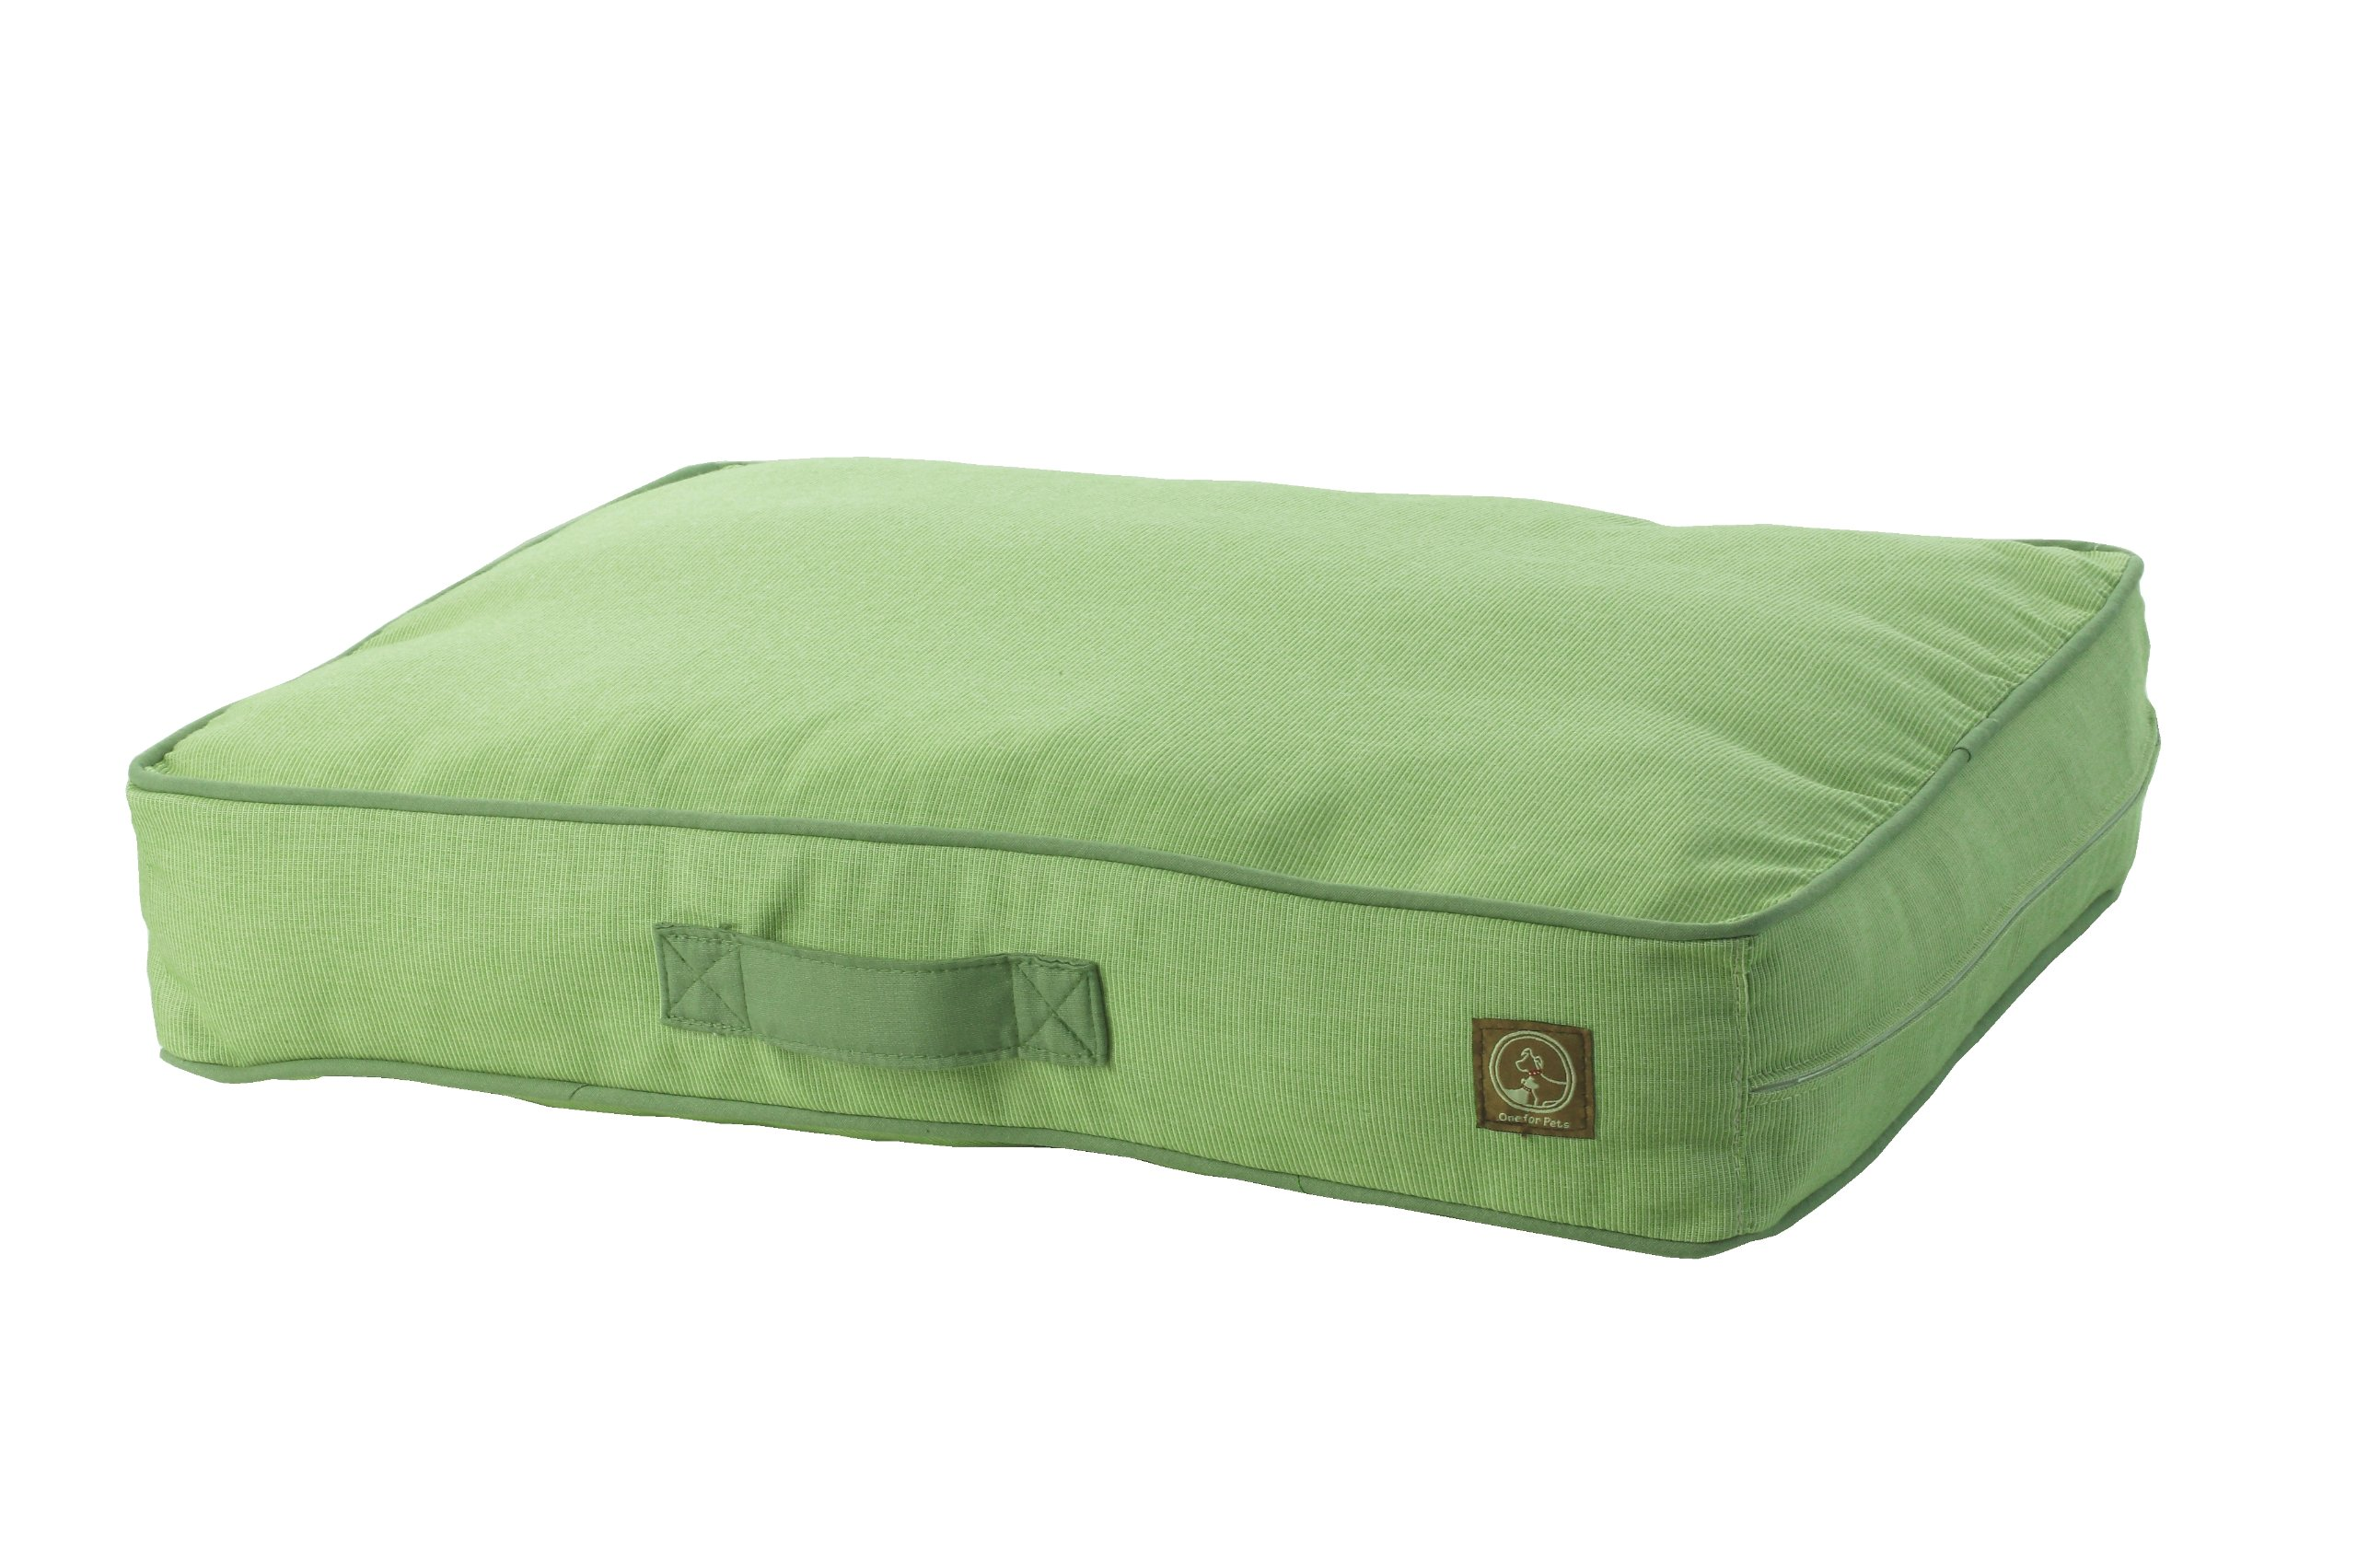 One for Pets Siesta Indoor/Outdoor Pet Bed Dog Bed Duvet Cover, Large, Green by One for Pets